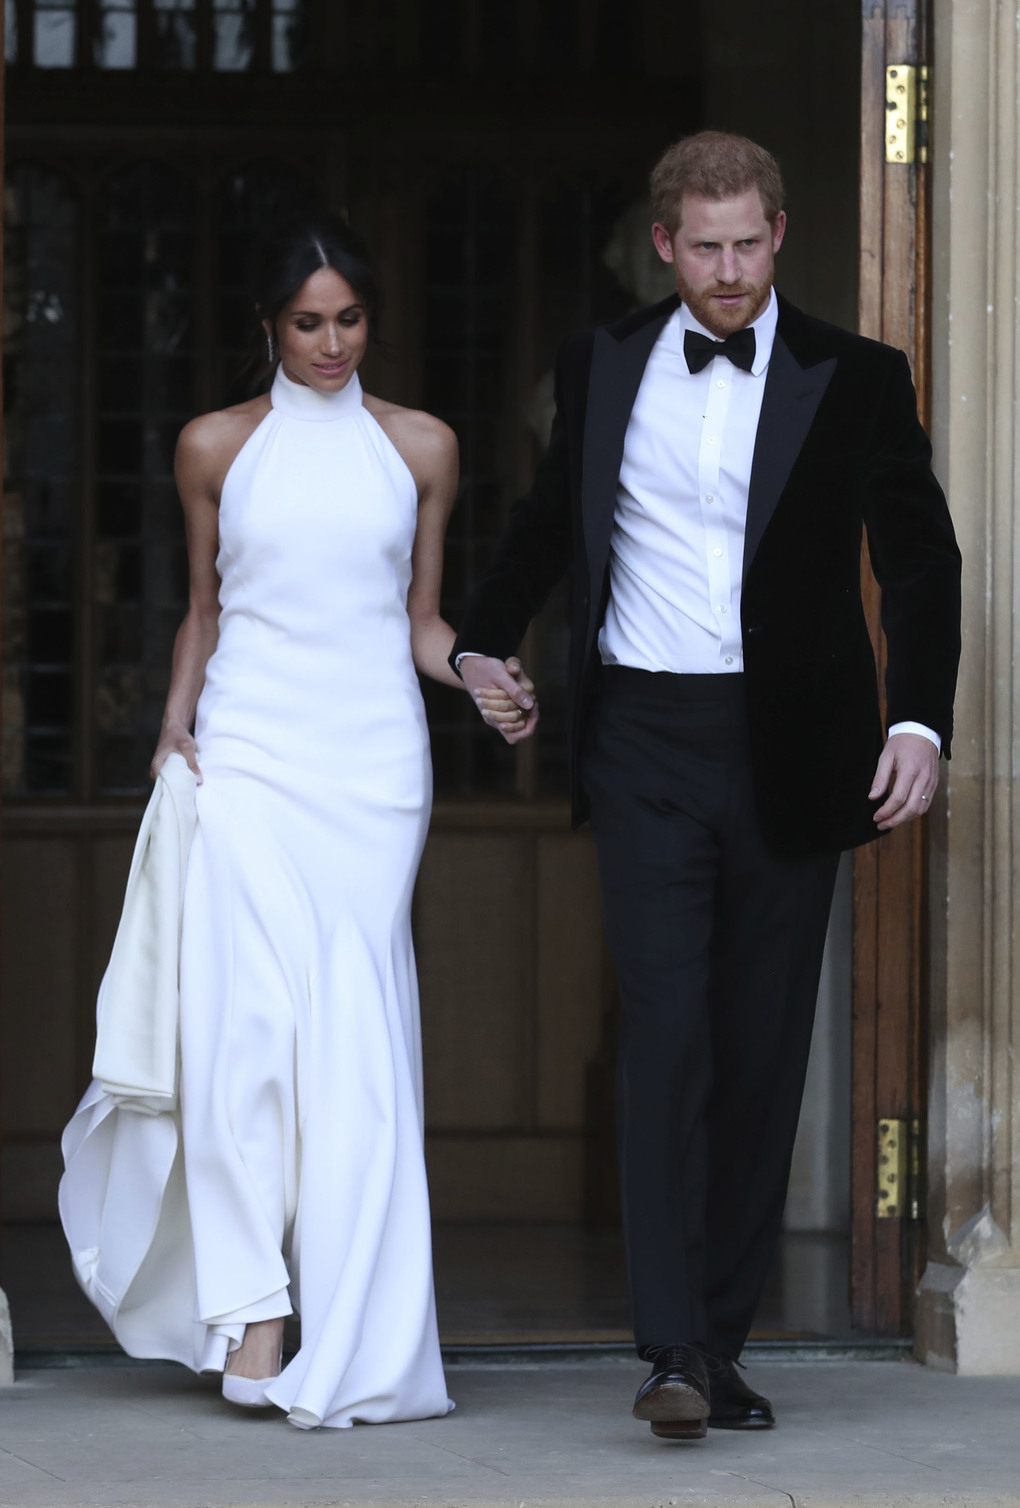 The newly married Duke and Duchess of Sussex, Meghan Markle and Prince Harry, leave Windsor Castle after their wedding in Windsor near London Saturday, May 19, 2018 to attend an evening reception at Frogmore House, hosted by the Prince of Wales.  (Steve Parsons/pool photo via AP)